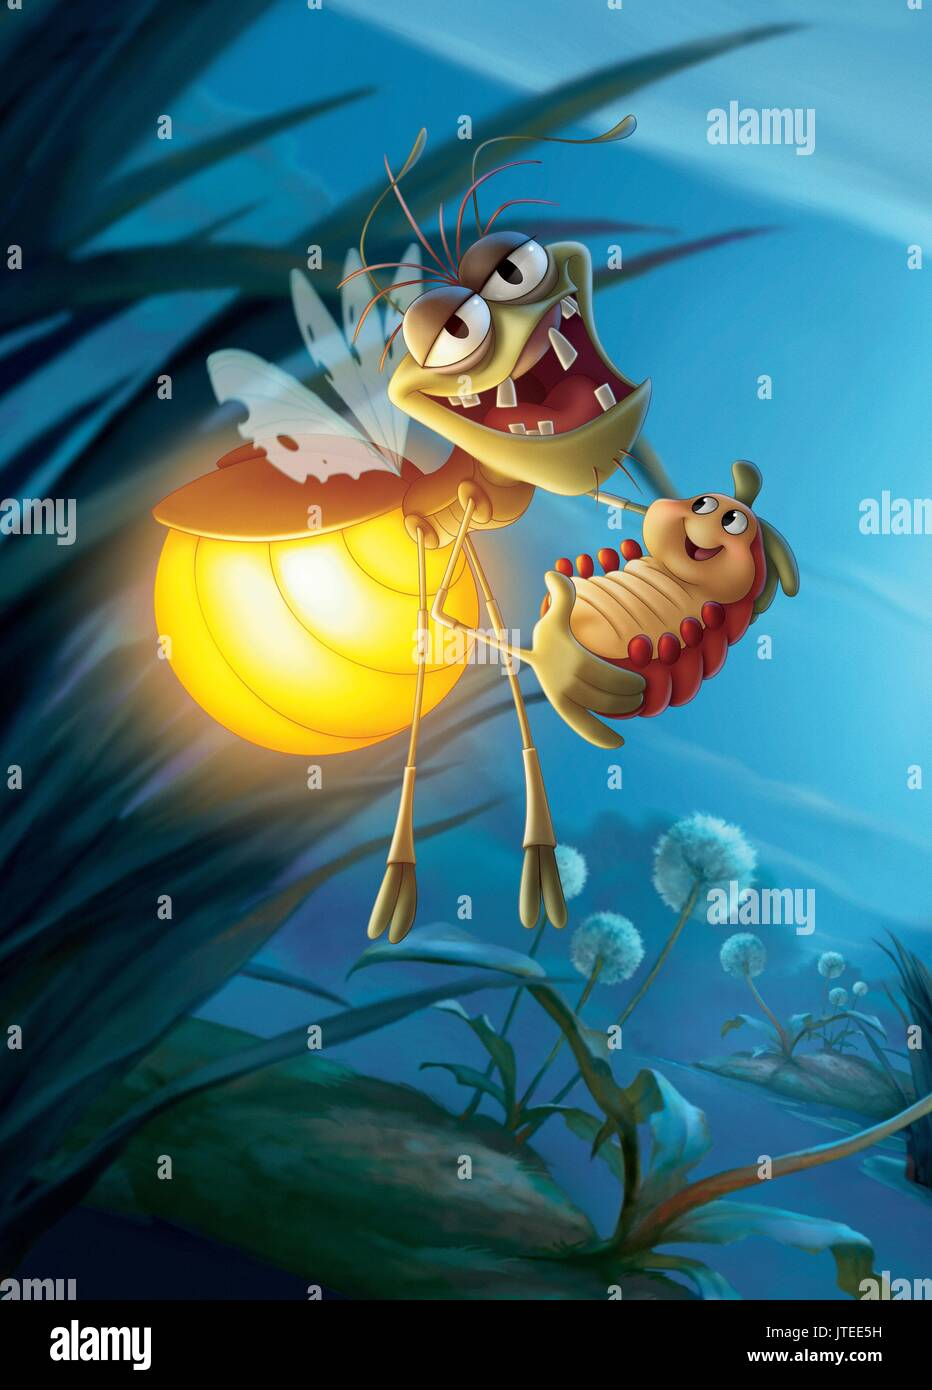 Ray The Princess And The Frog 2009 Stock Photo Alamy